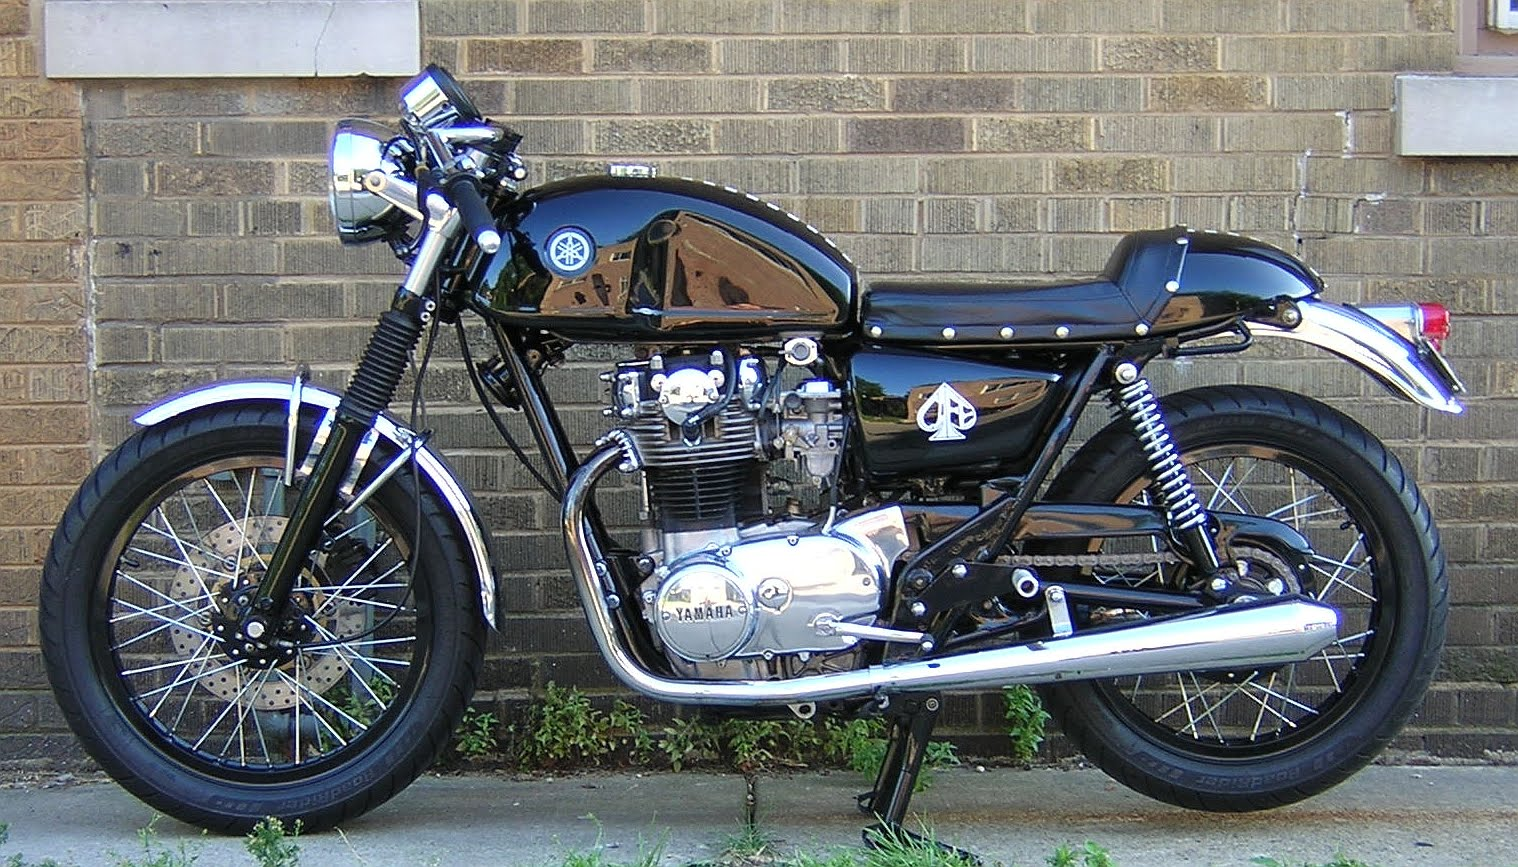 black beauty xs650 cafe racer motorcycle photo of the day. Black Bedroom Furniture Sets. Home Design Ideas